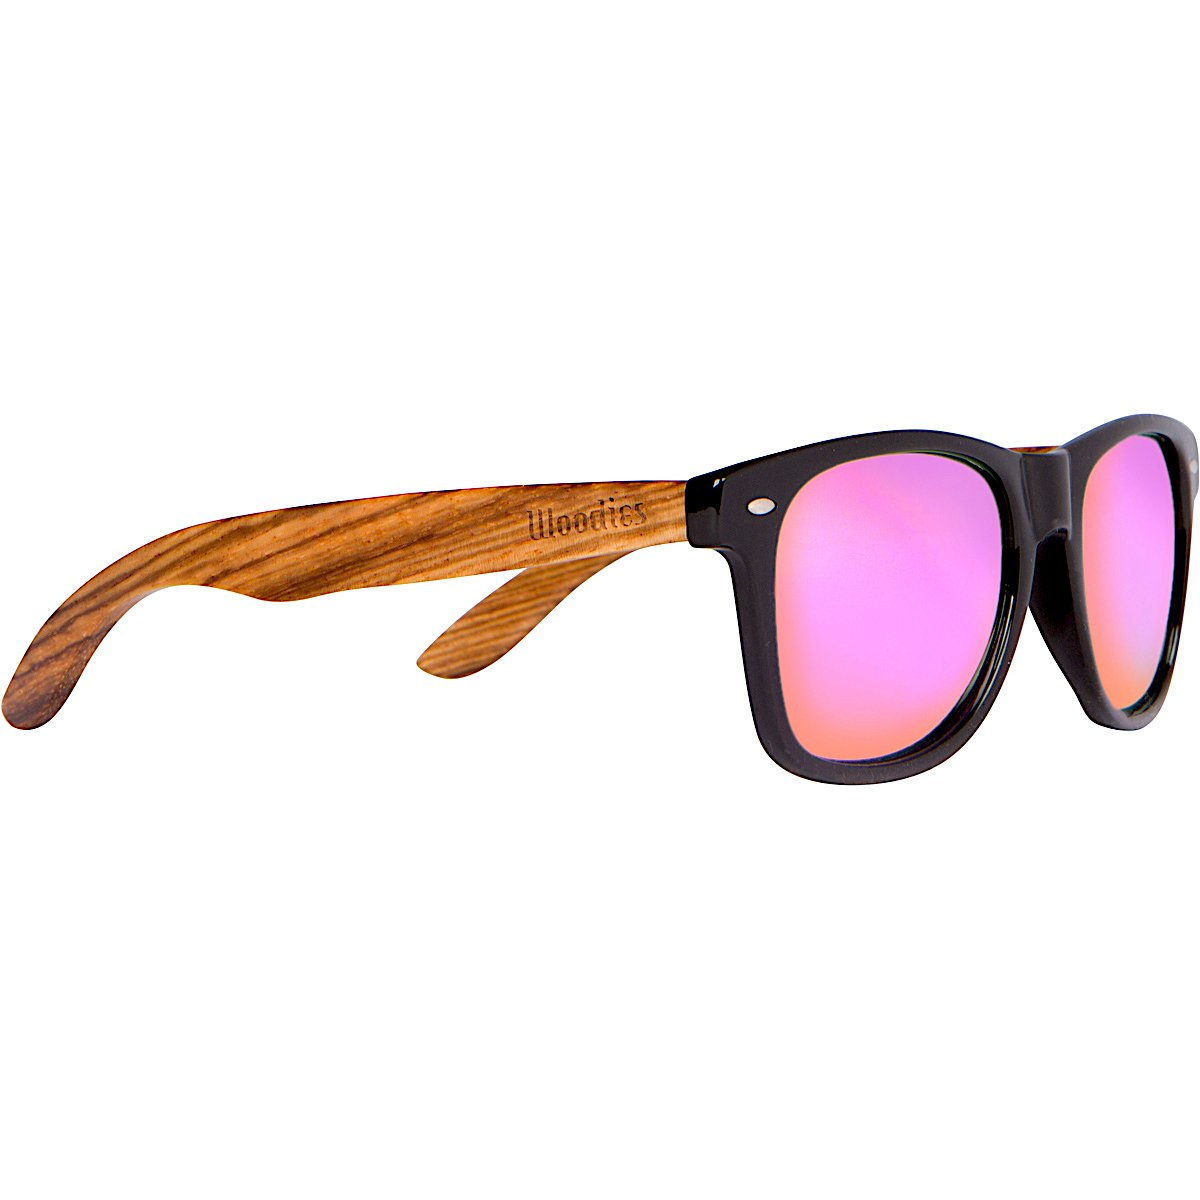 WOODIES Zebra Wood Sunglasses with Pink Mirror Polarized Lenses